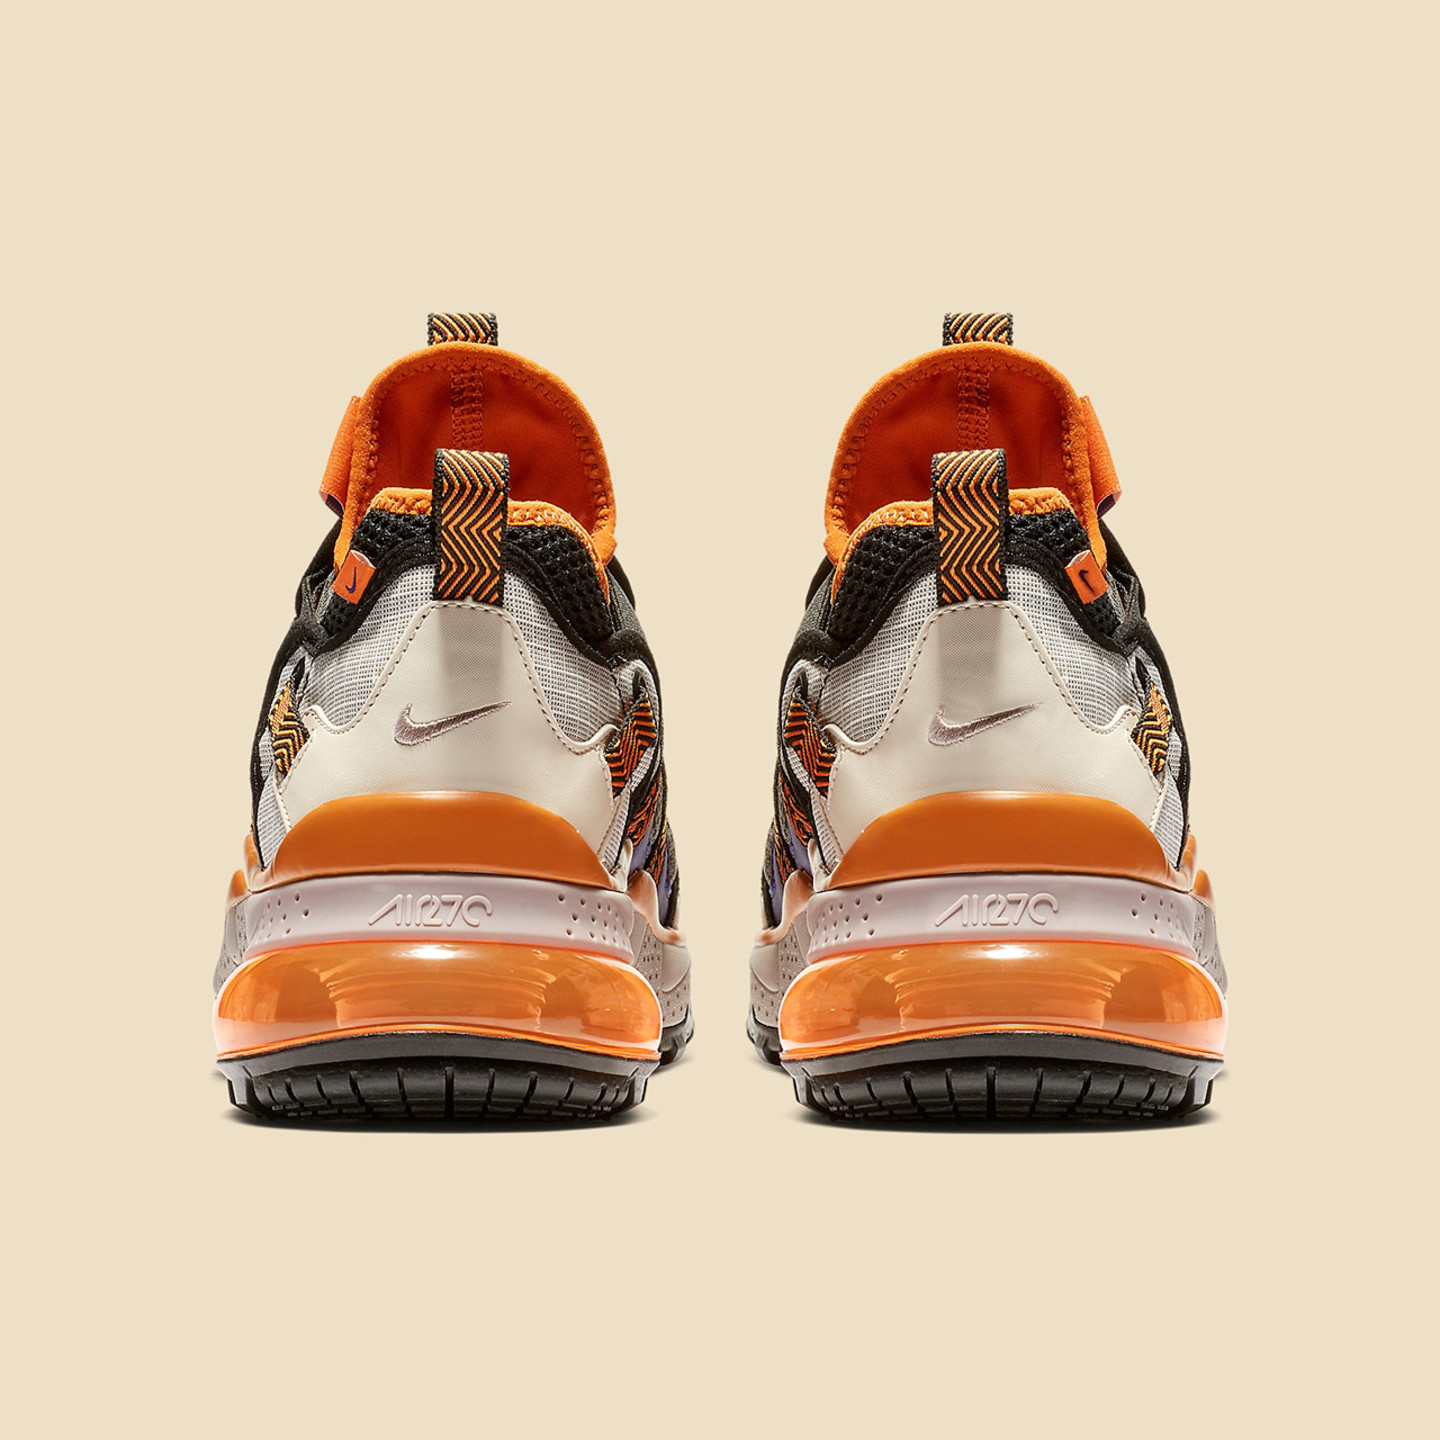 Nike Air Max 270 Bowfin Pumice / Light Orewood Brown / Burnt Cinder / Orange AJ7200-201